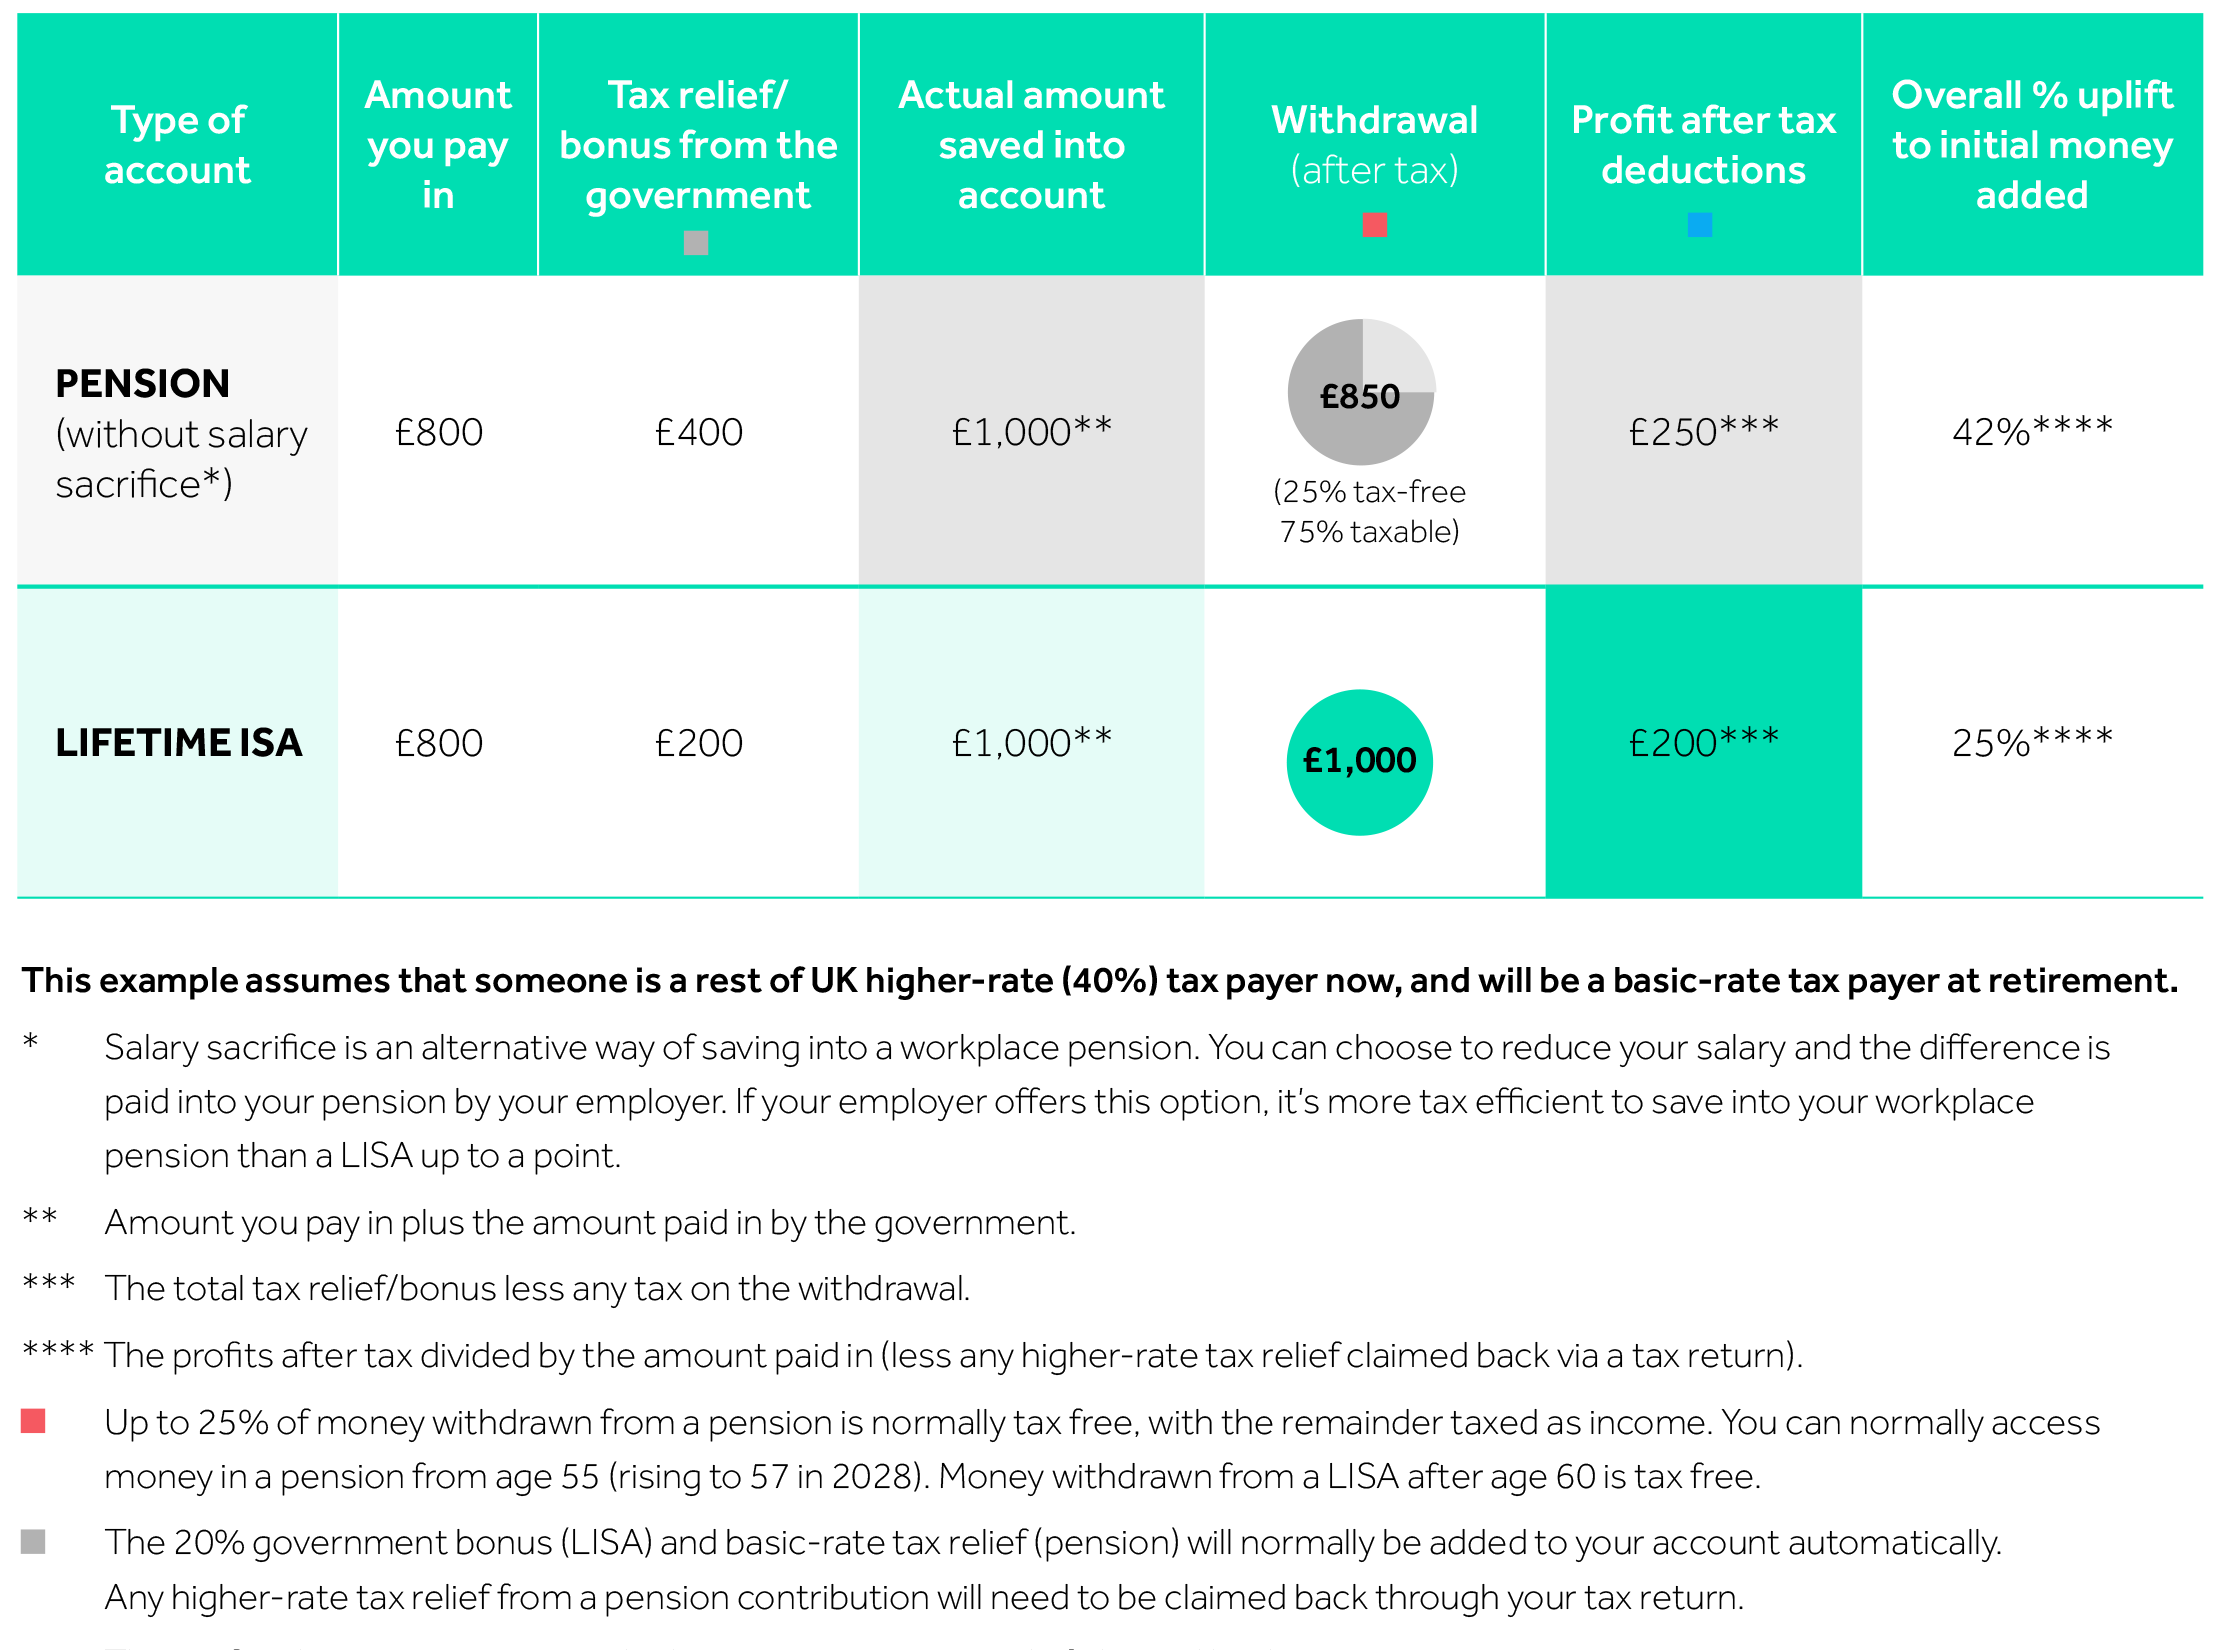 Table showing an example of the tax treatment of contributions and withdrawals if you're a higher-rate taxpayer